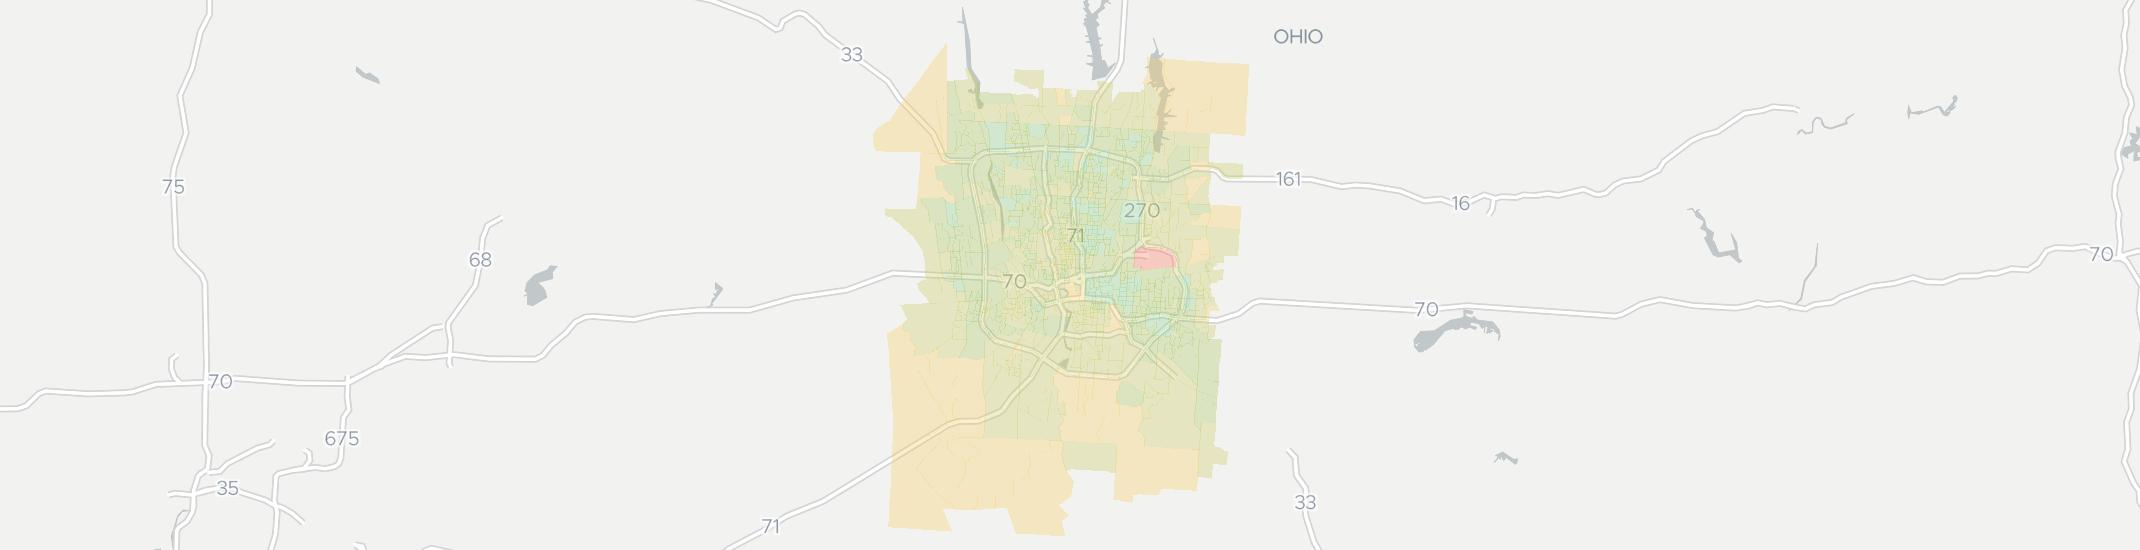 12 Best Internet Service Providers in Columbus, OH (Aug, 2019) Zip Code Map Columbus Ohio on columbus ohio hoover reservoir lake map, columbus ohio atlas, columbus ohio region map, columbus ohio school map, columbus ohio zip code chart, columbus ohio phone map, 254 area code cities map, columbus water plant map, columbus transit map, columbus indiana people trail map, columbus ohio area code, columbus ohio home, cleveland tn zip codes map, ohio hilliard subdivisions map, columbus ohio expo center map, columbus mississppi map, columbus ohio counties by zip, ohio on us map, columbus zip code list, columbus ohio on map,